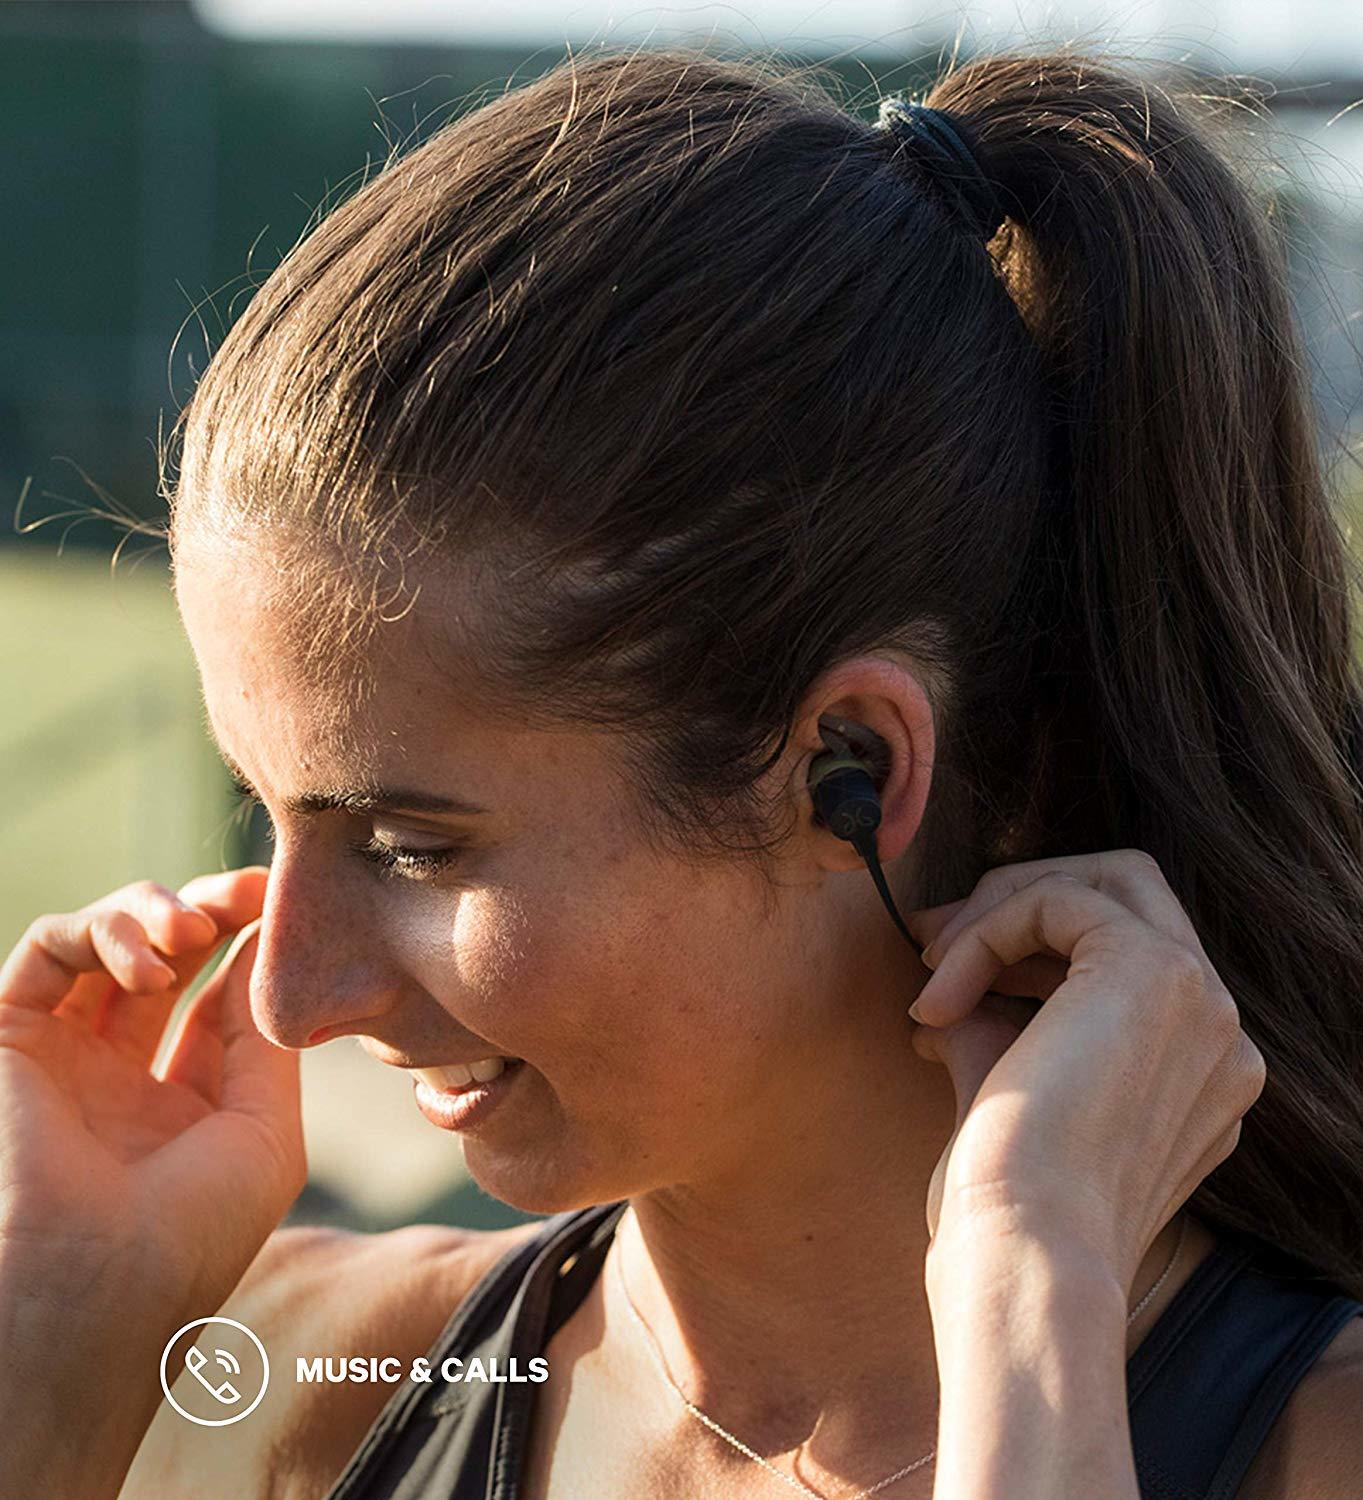 Jaybird: Tarah Wireless Sport Headphones image